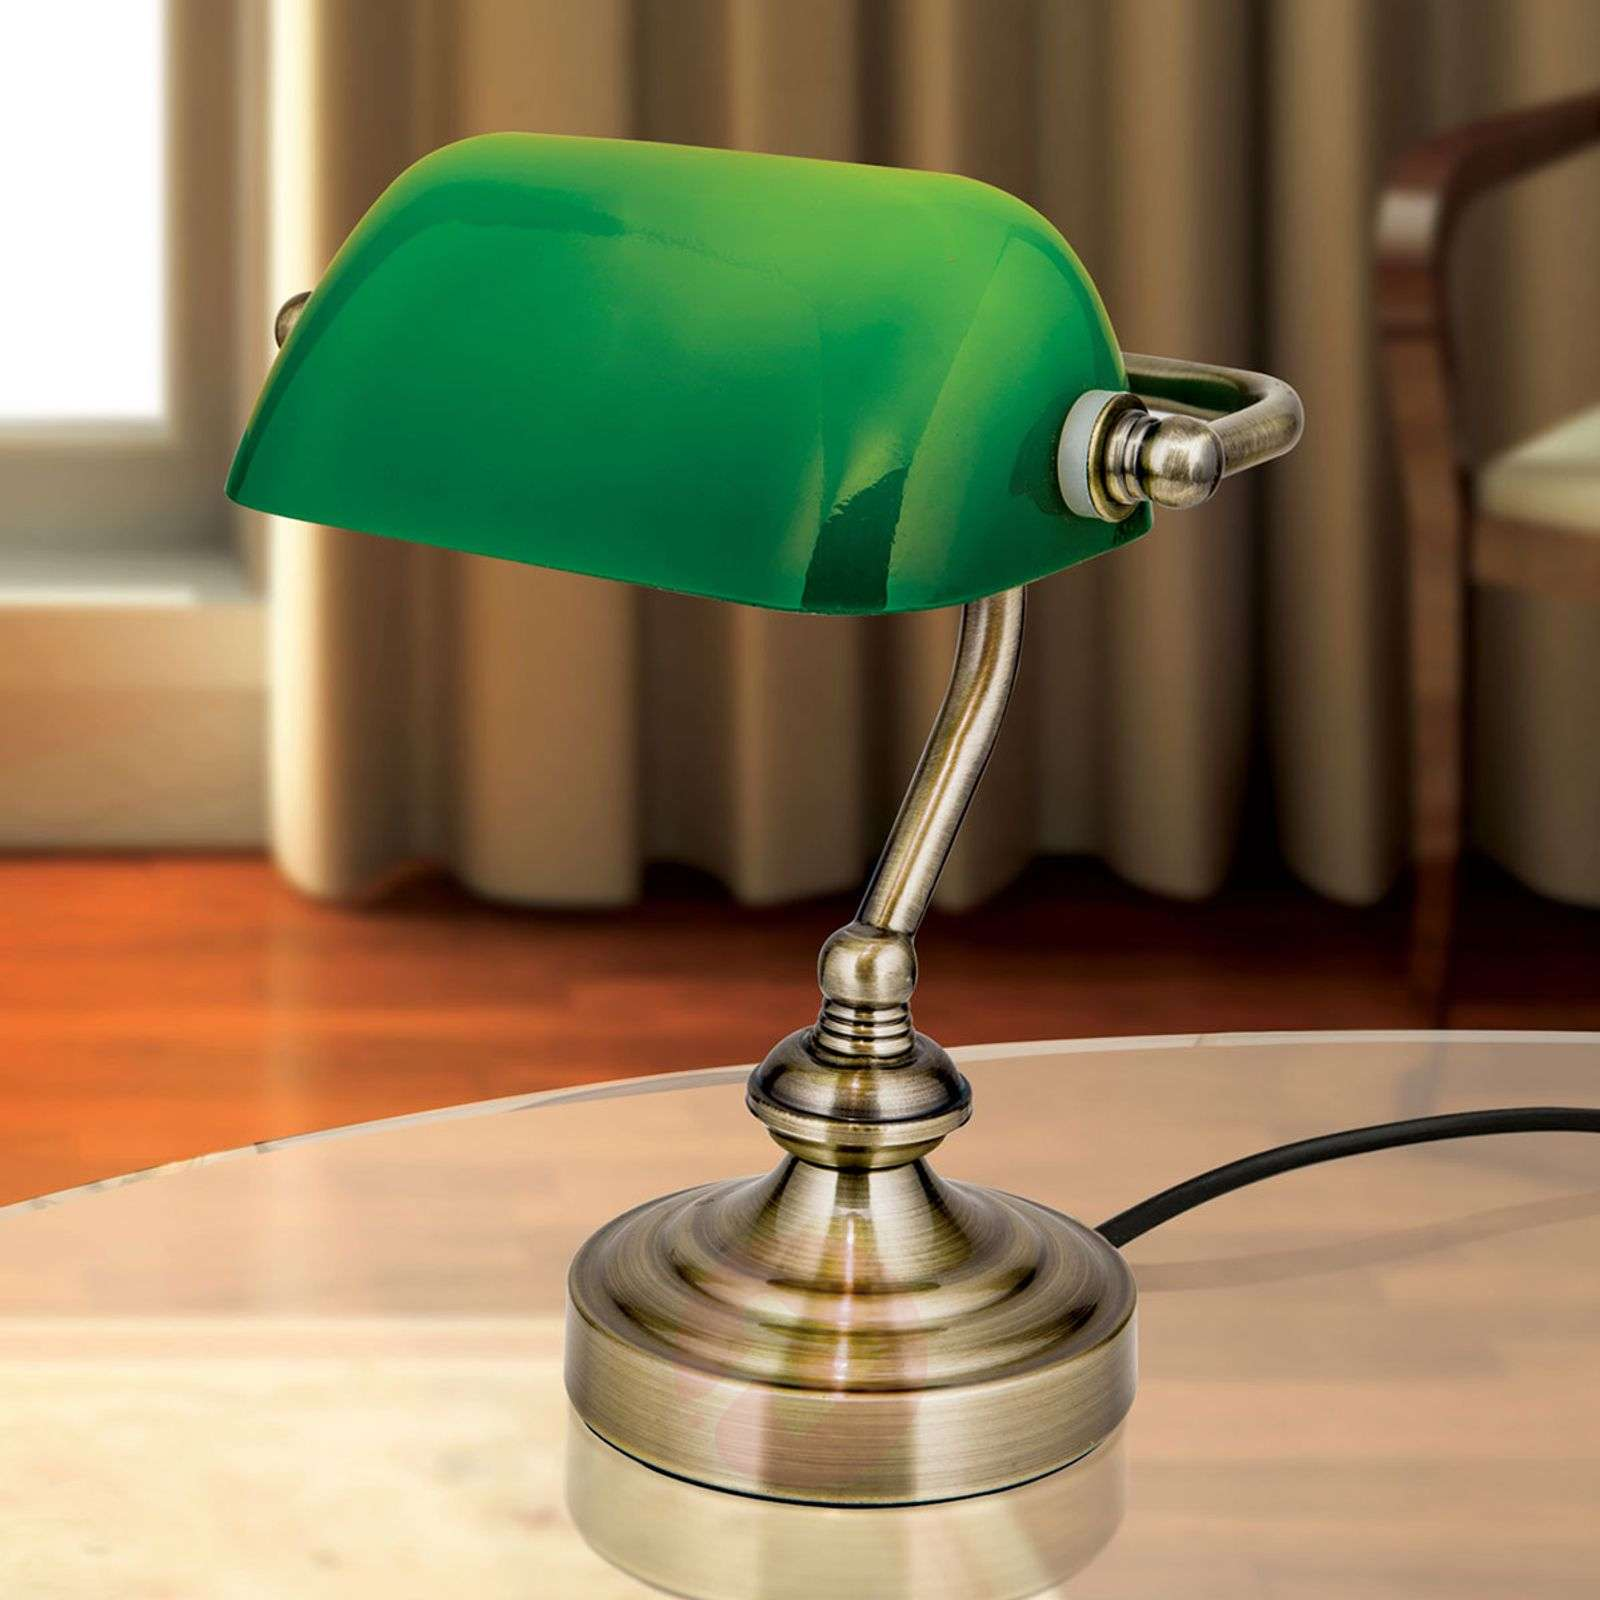 Zora banker's table lamp, green glass lampshade-7255360-01